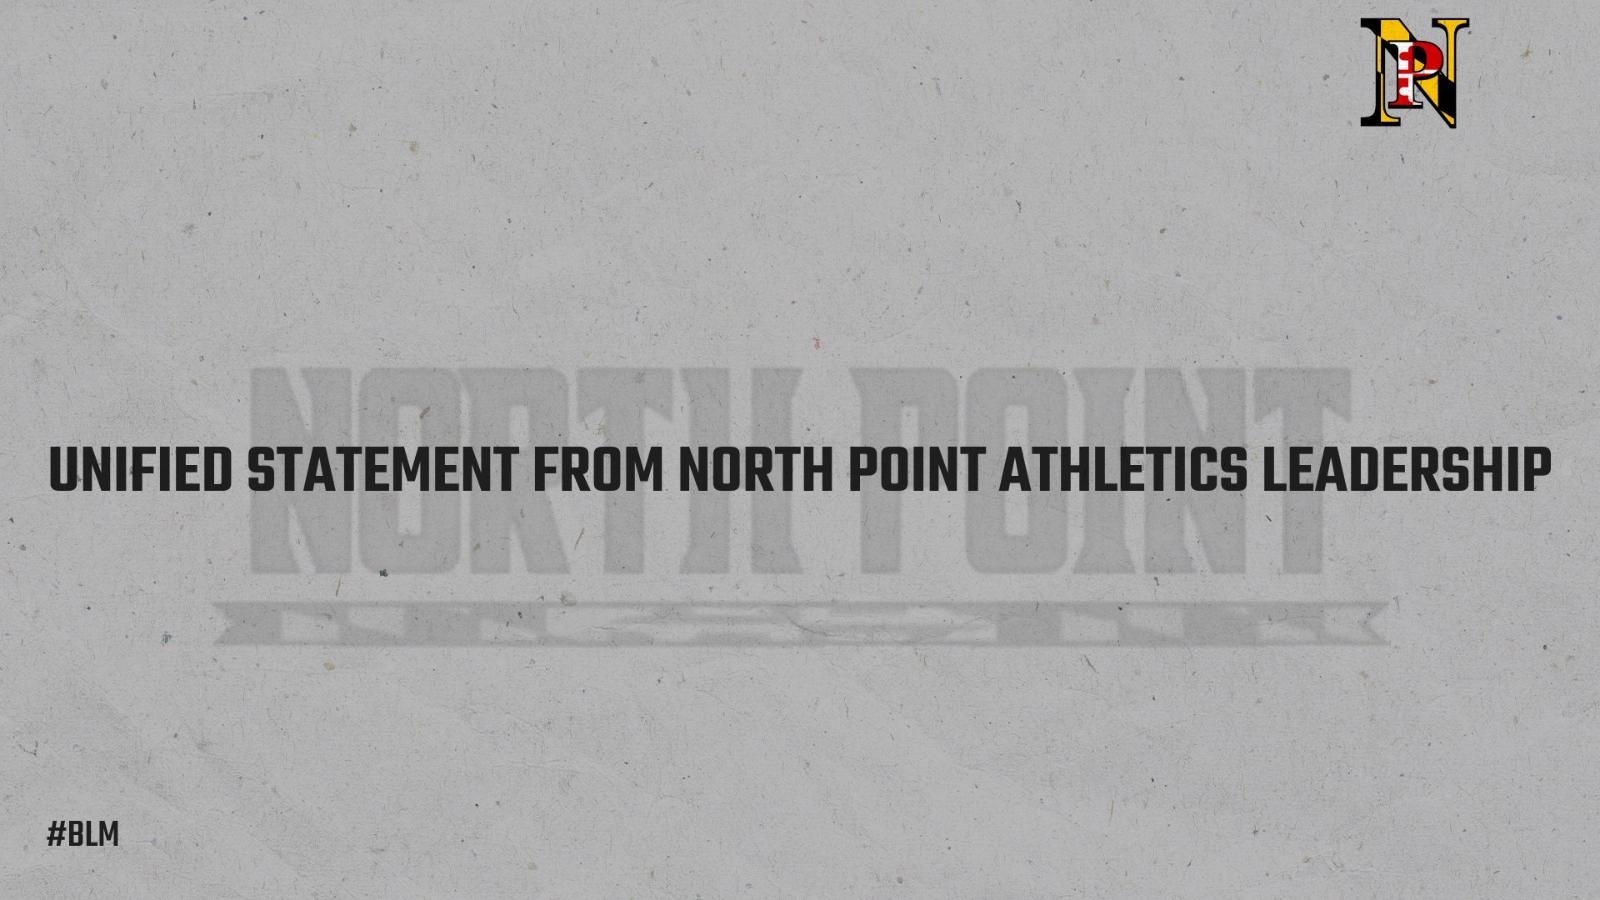 UNIFIED STATEMENT FROM NORTH POINT ATHLETICS LEADERSHIP